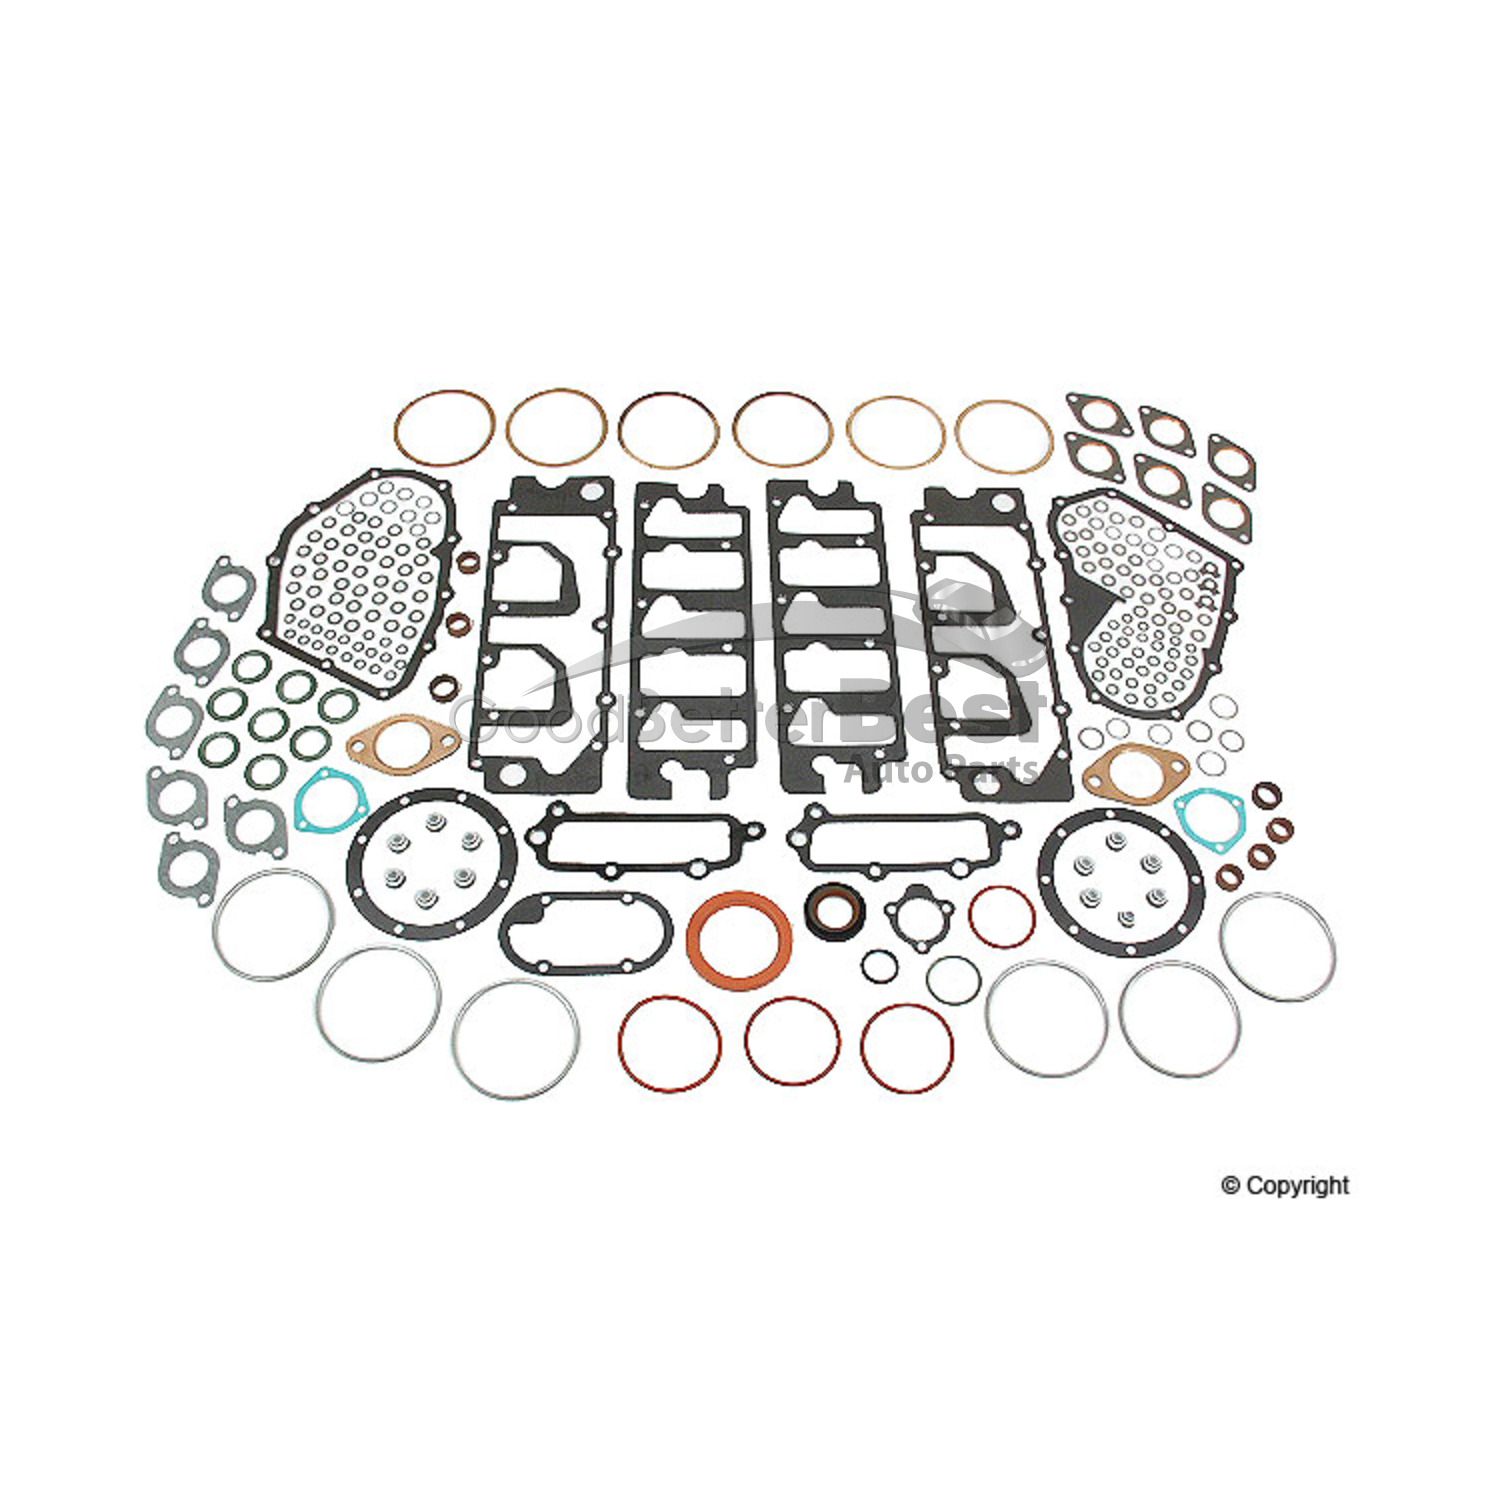 New Wrightwood Racing Engine Gasket Set 91110090100W